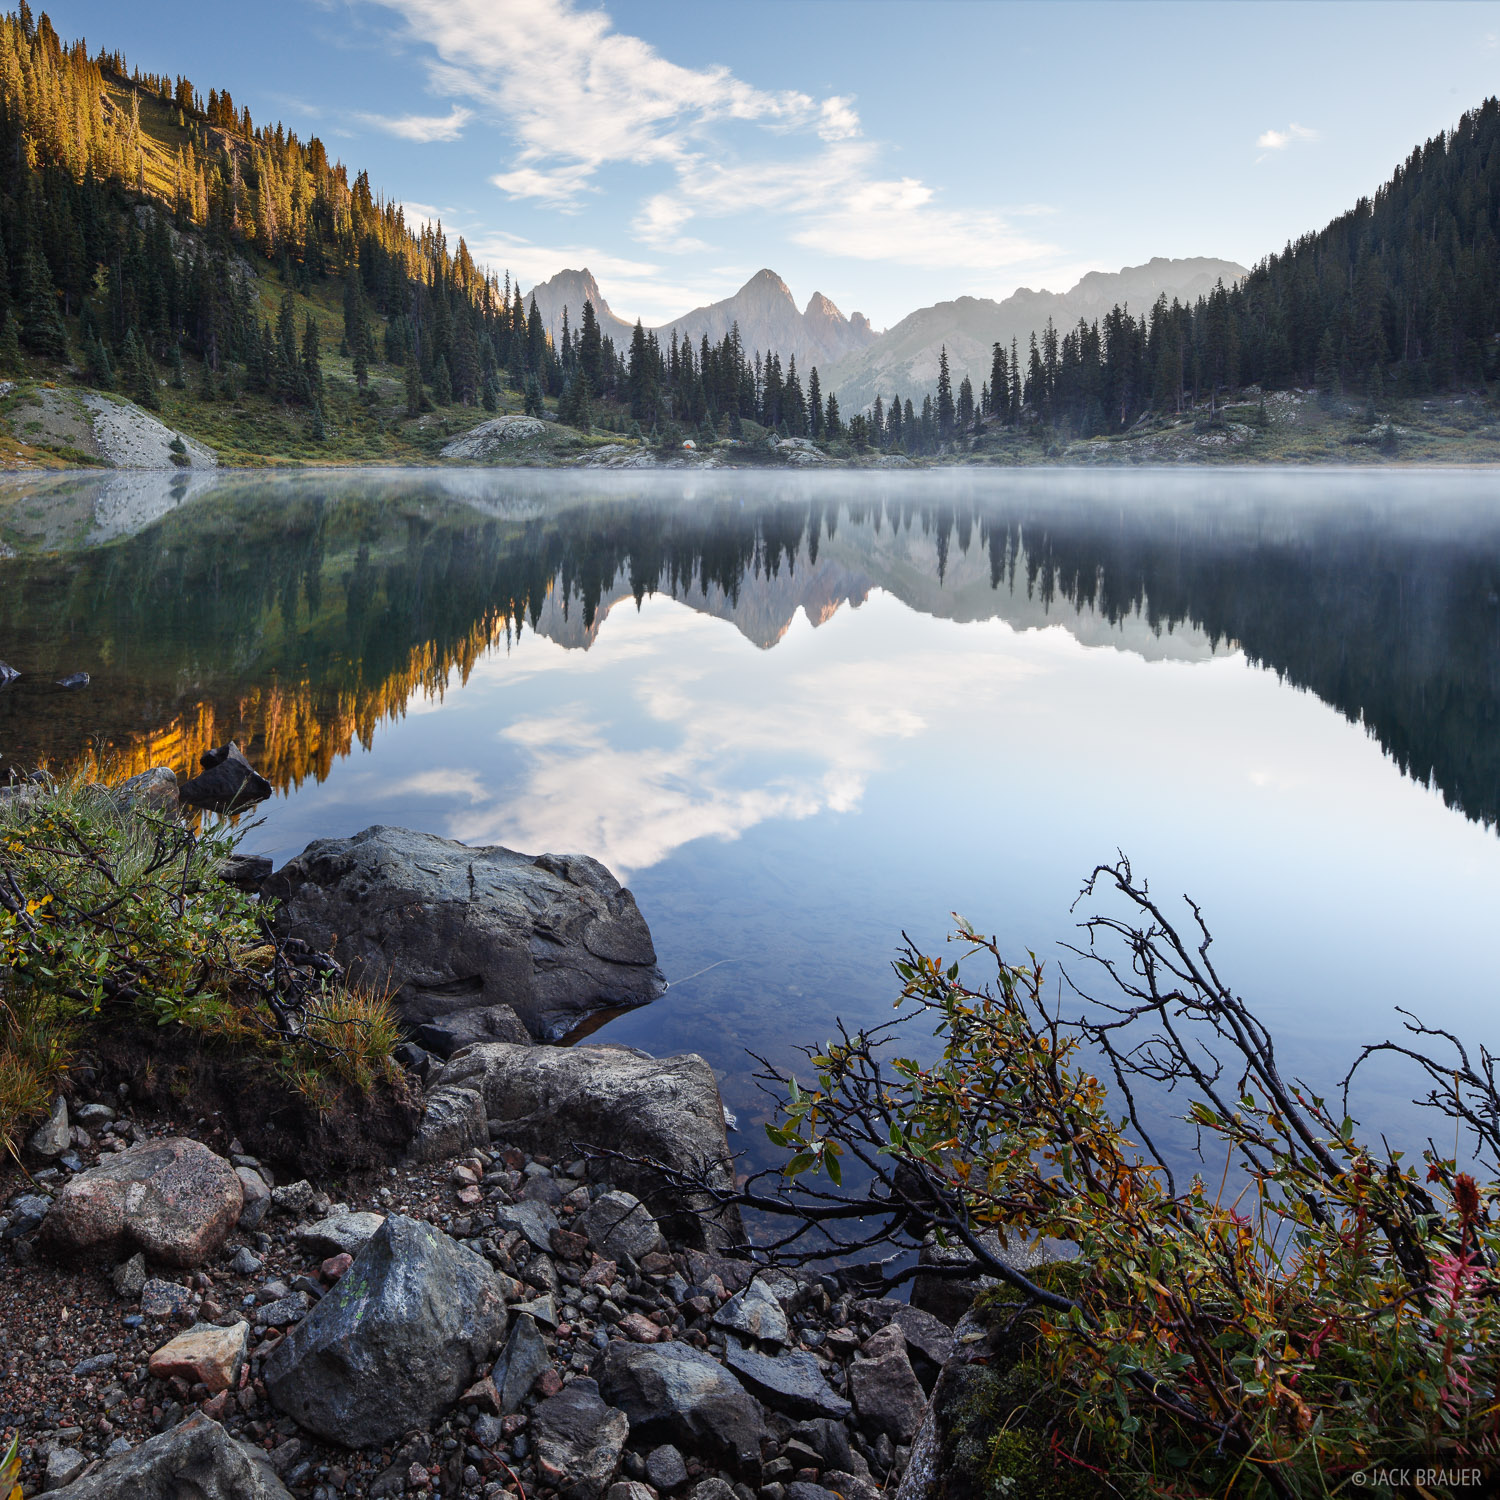 Mist on a remote lake in the Weminuche Wilderness.